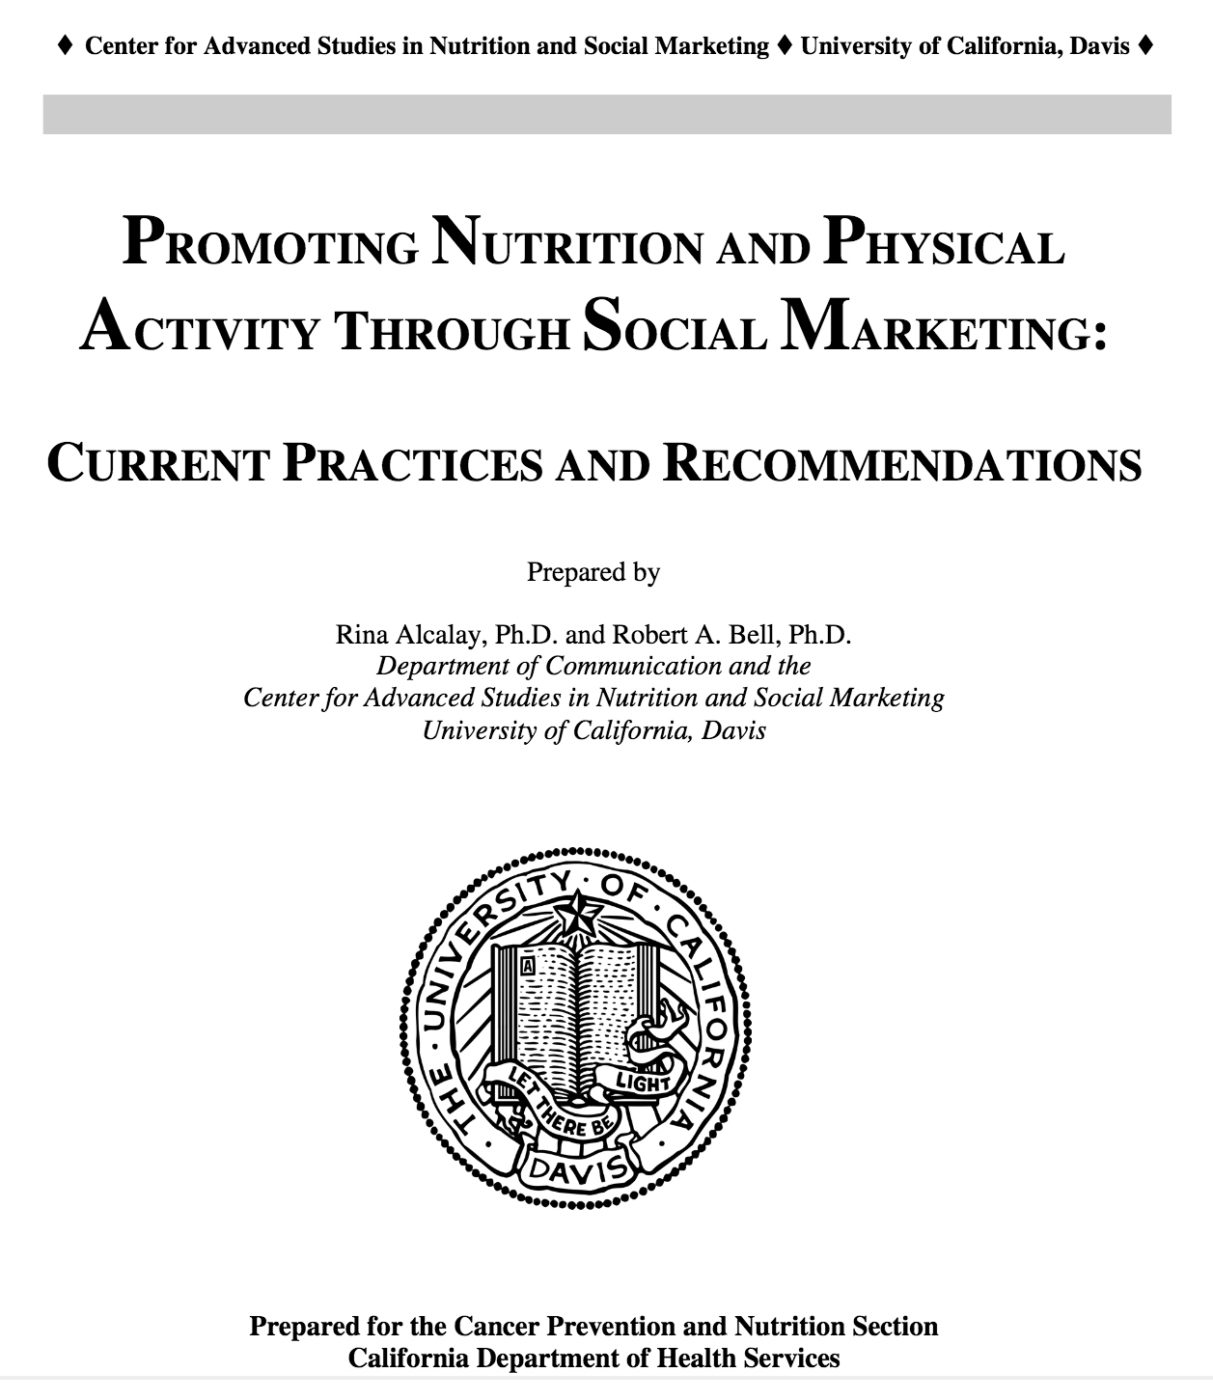 Promoting Nutrition and Physical Activity Through Social Marketing cover page